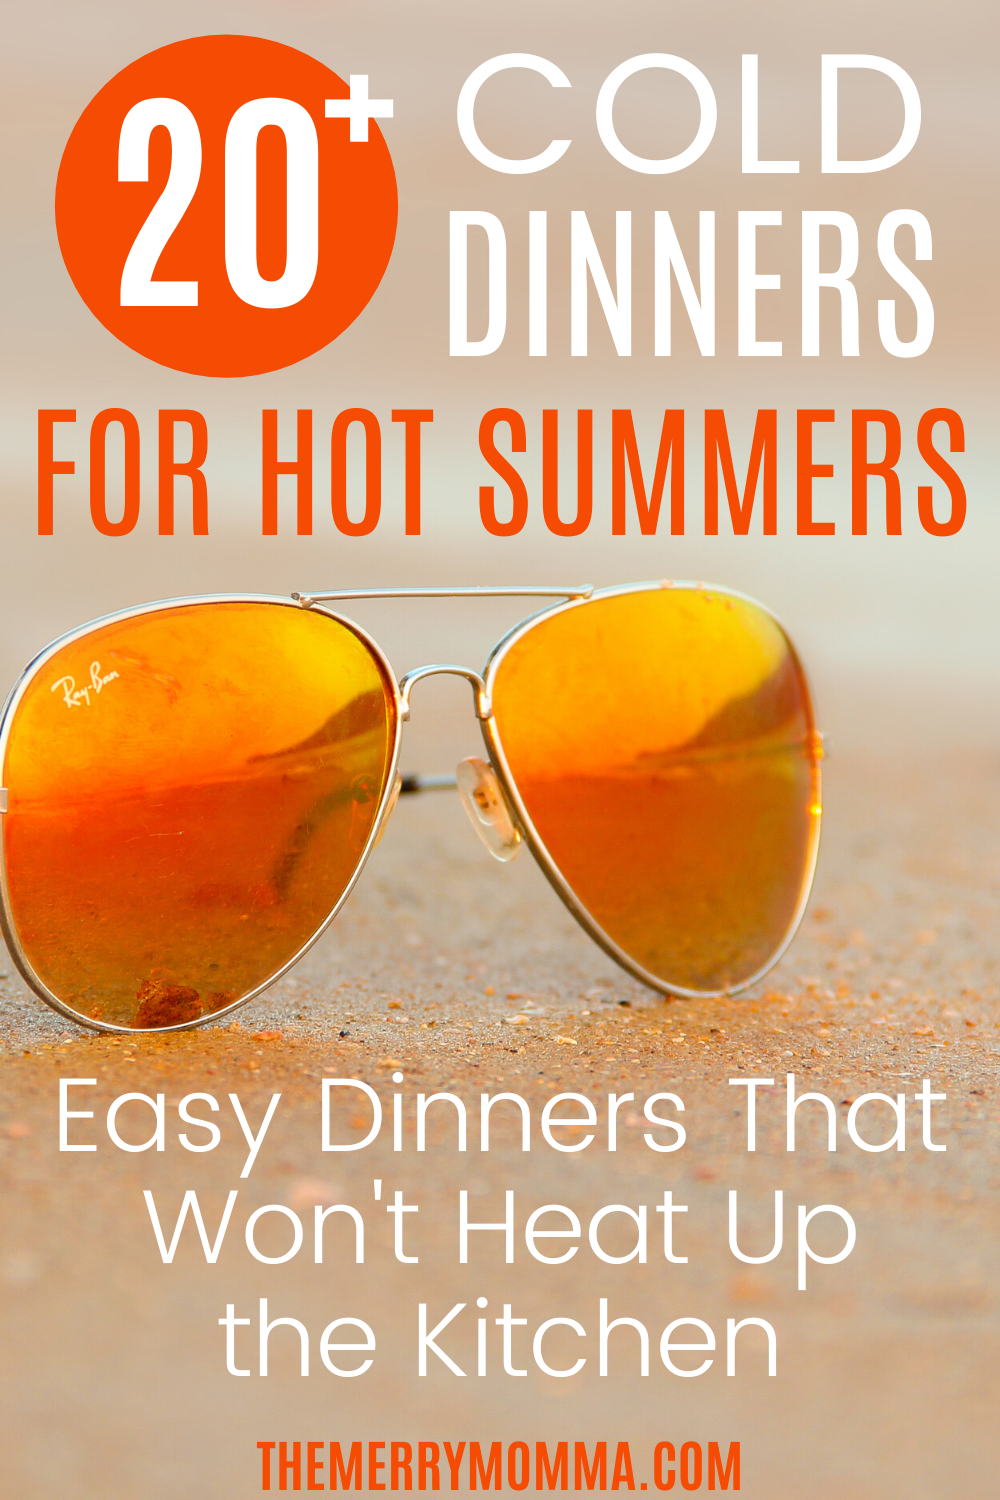 20+ Cold Dinners for Hot Summers